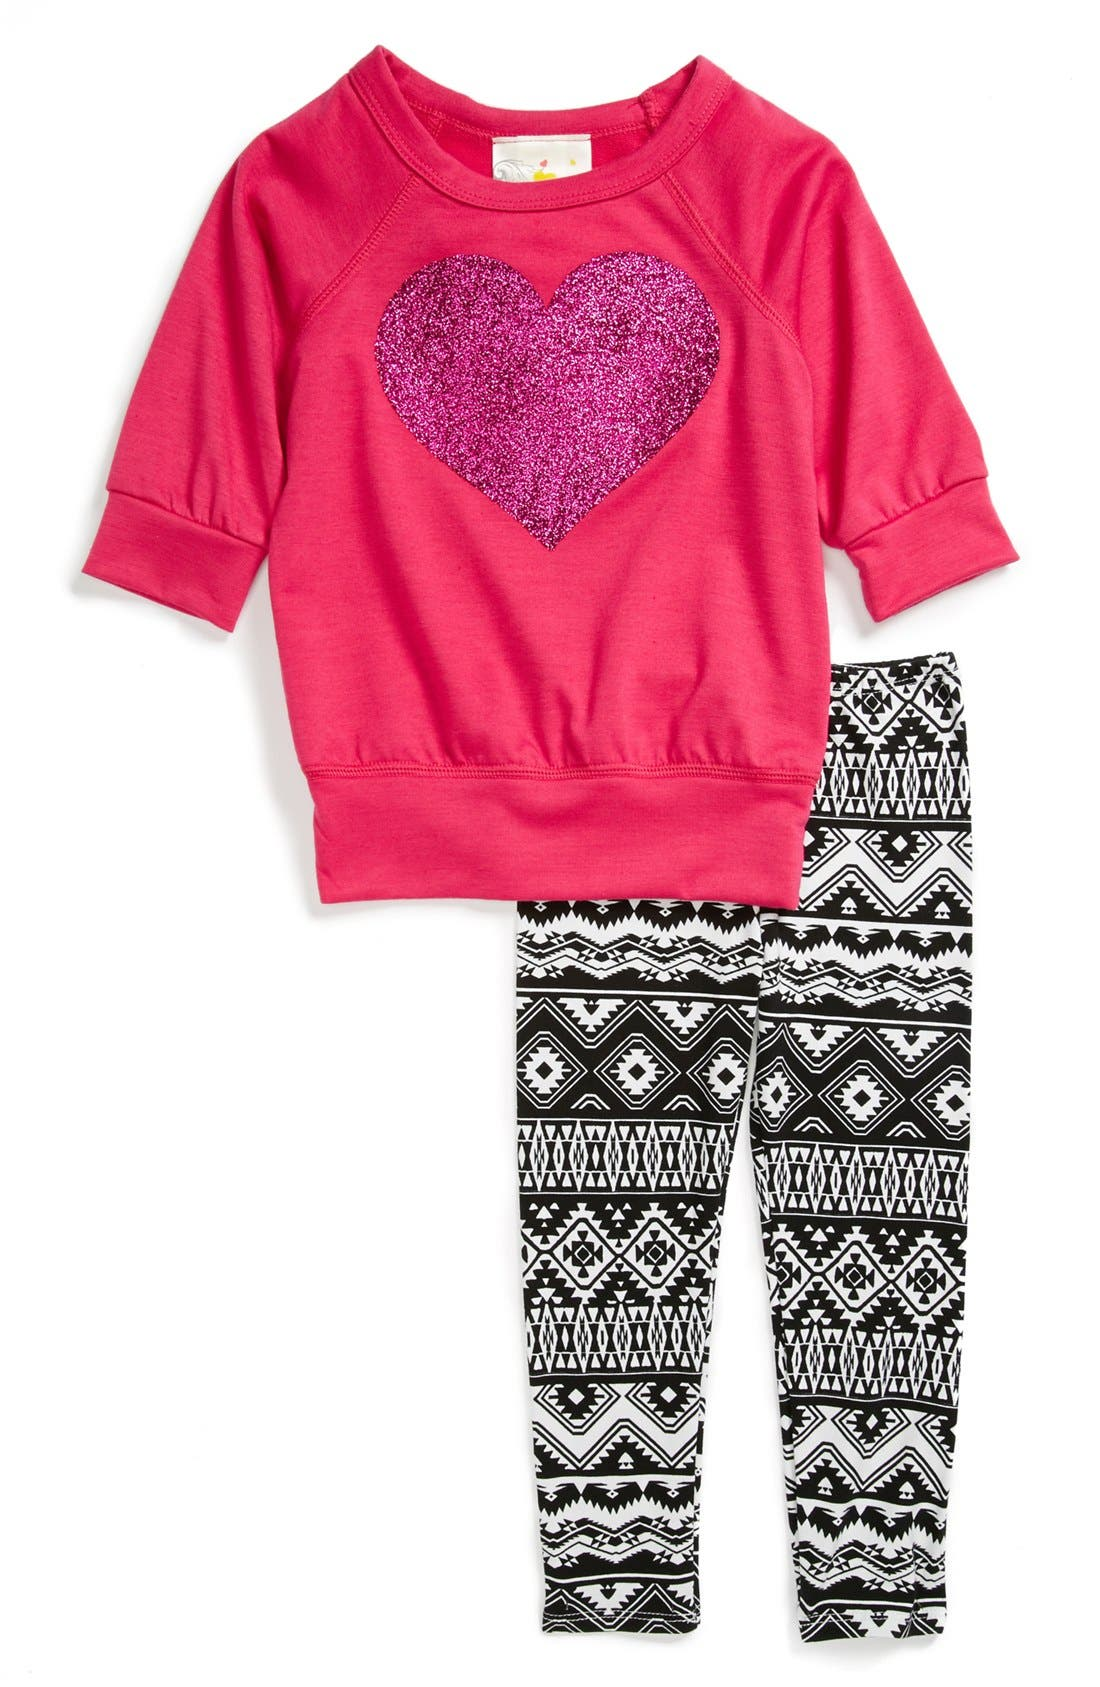 Main Image - Jenna & Jessie Glitter Tee & Leggings (Toddler Girls)